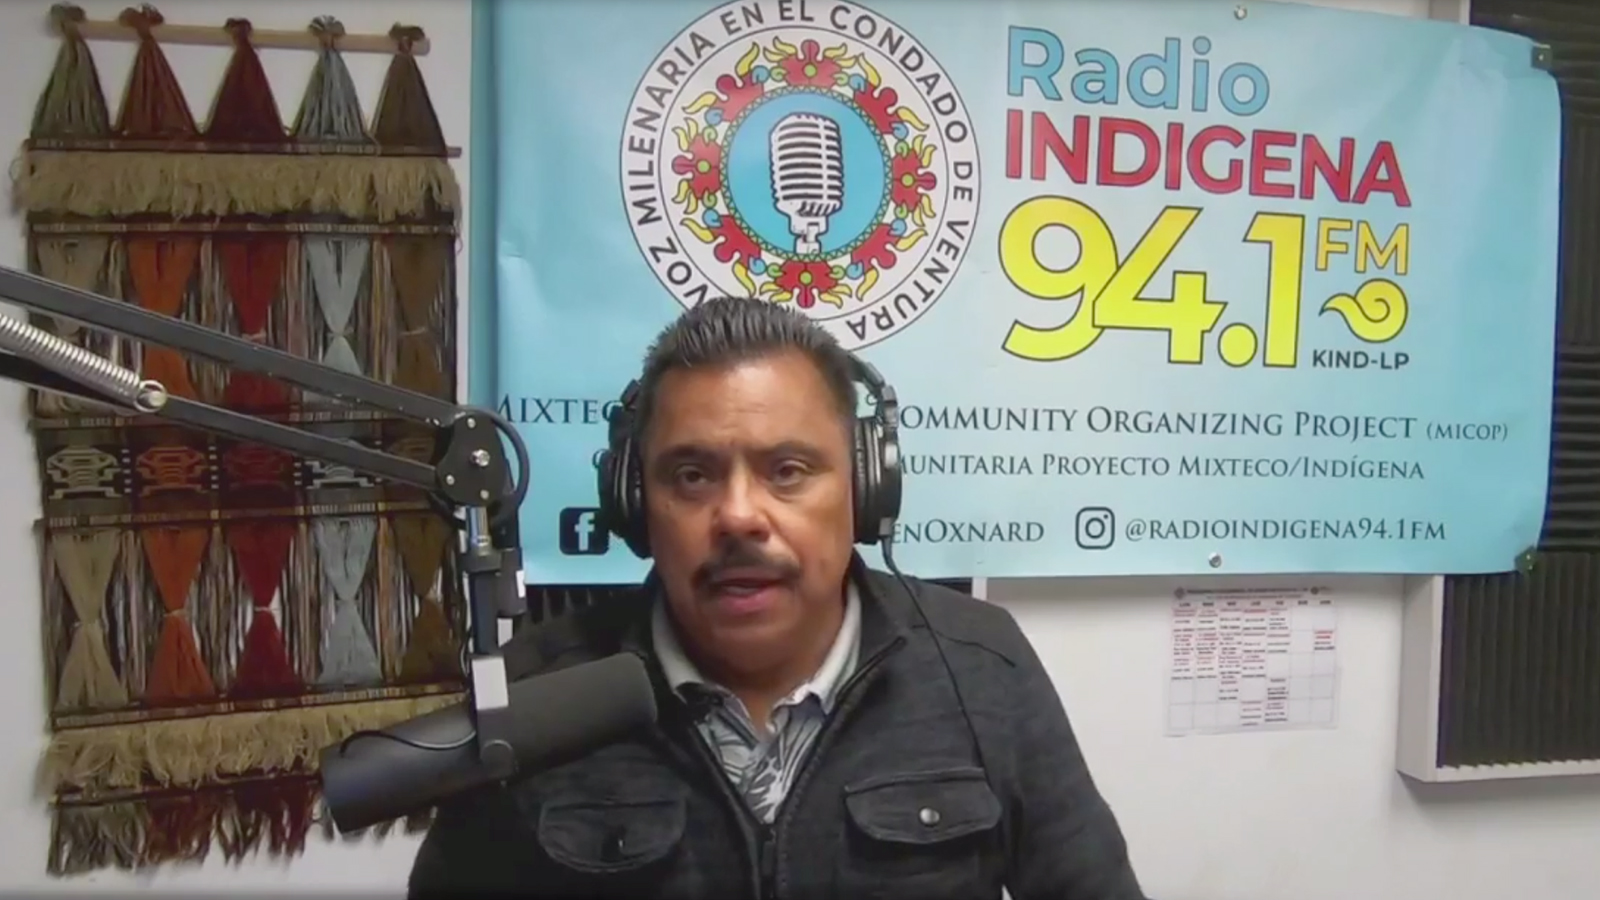 Radio hosts were among the first who could explain Covid to indigenous Mexican farmworkers in US